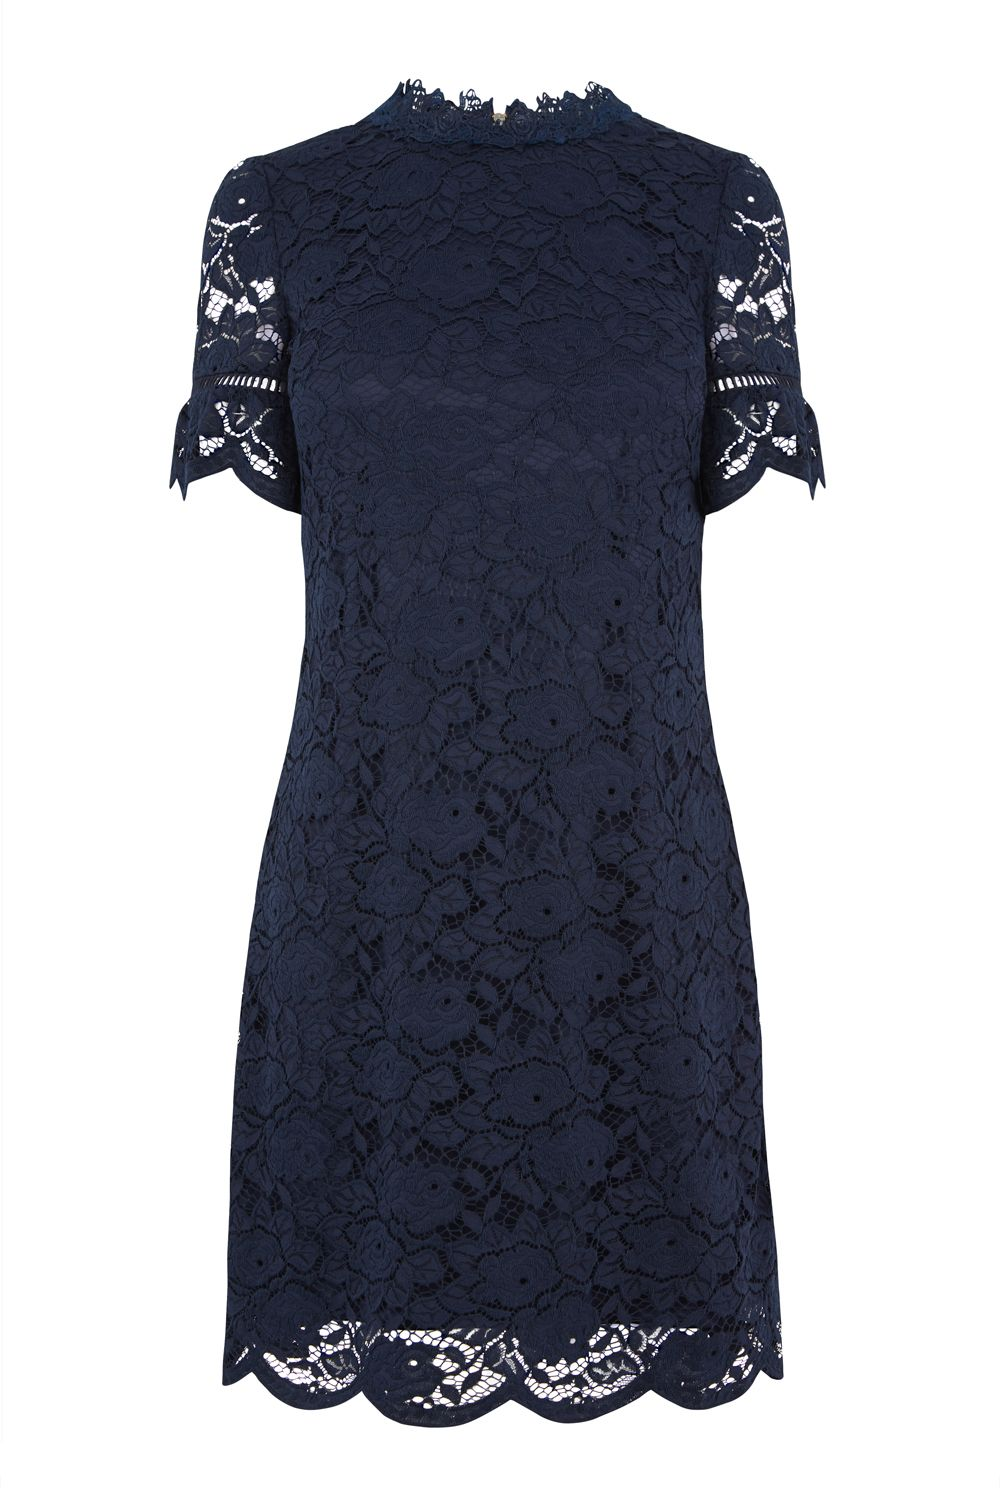 Oasis Lace Highneck Dress, Blue